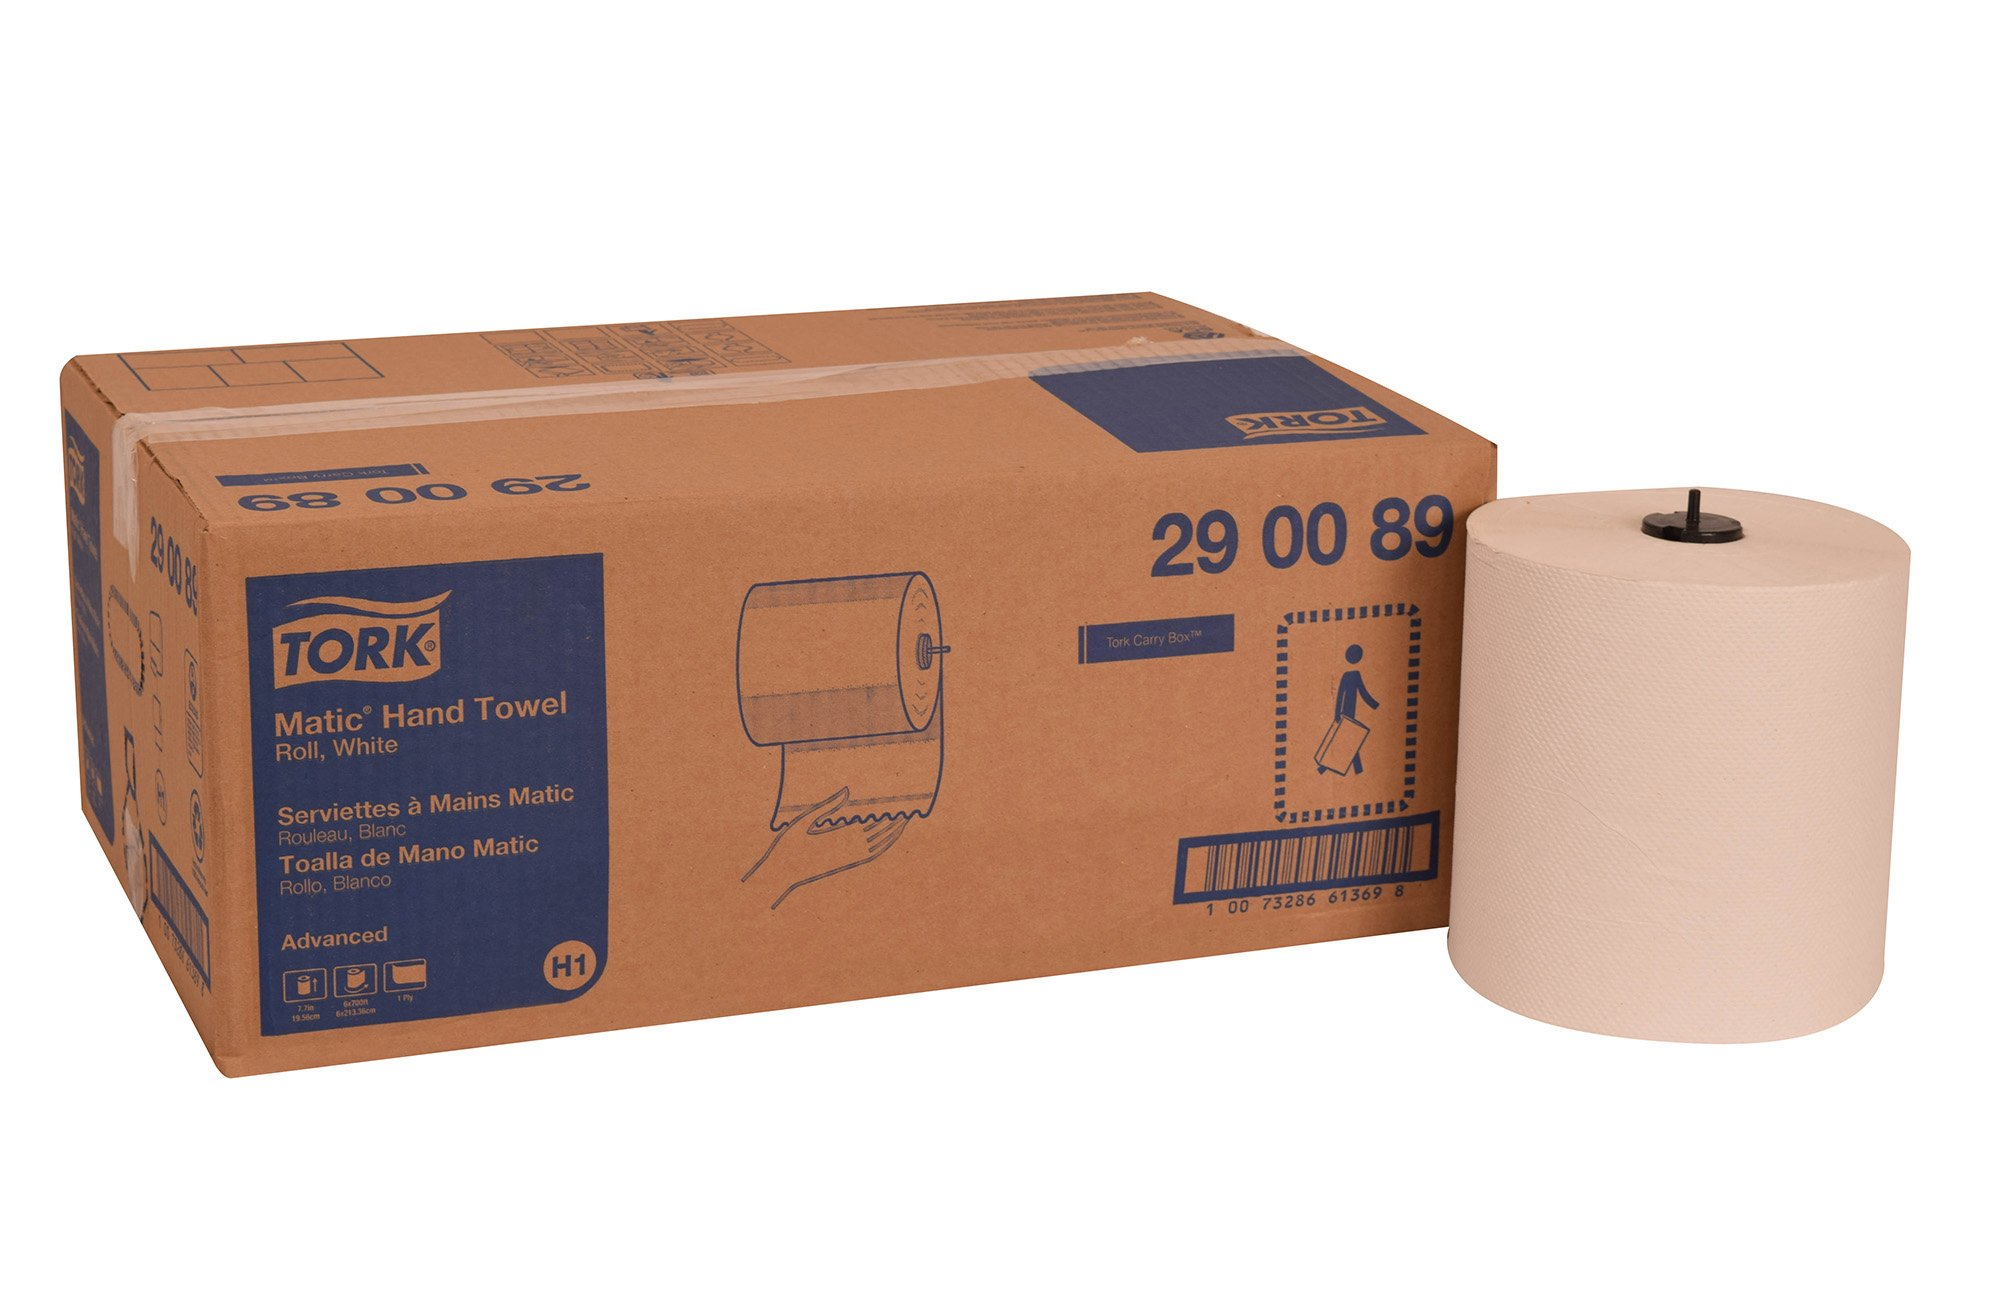 Tork 290089 Advanced Matic Paper Hand Towel Roll, 1-Ply, 7.7'' Width x 900' Length, White (Case of 6 Rolls, 700 Feet per Roll, 4,200 Feet)